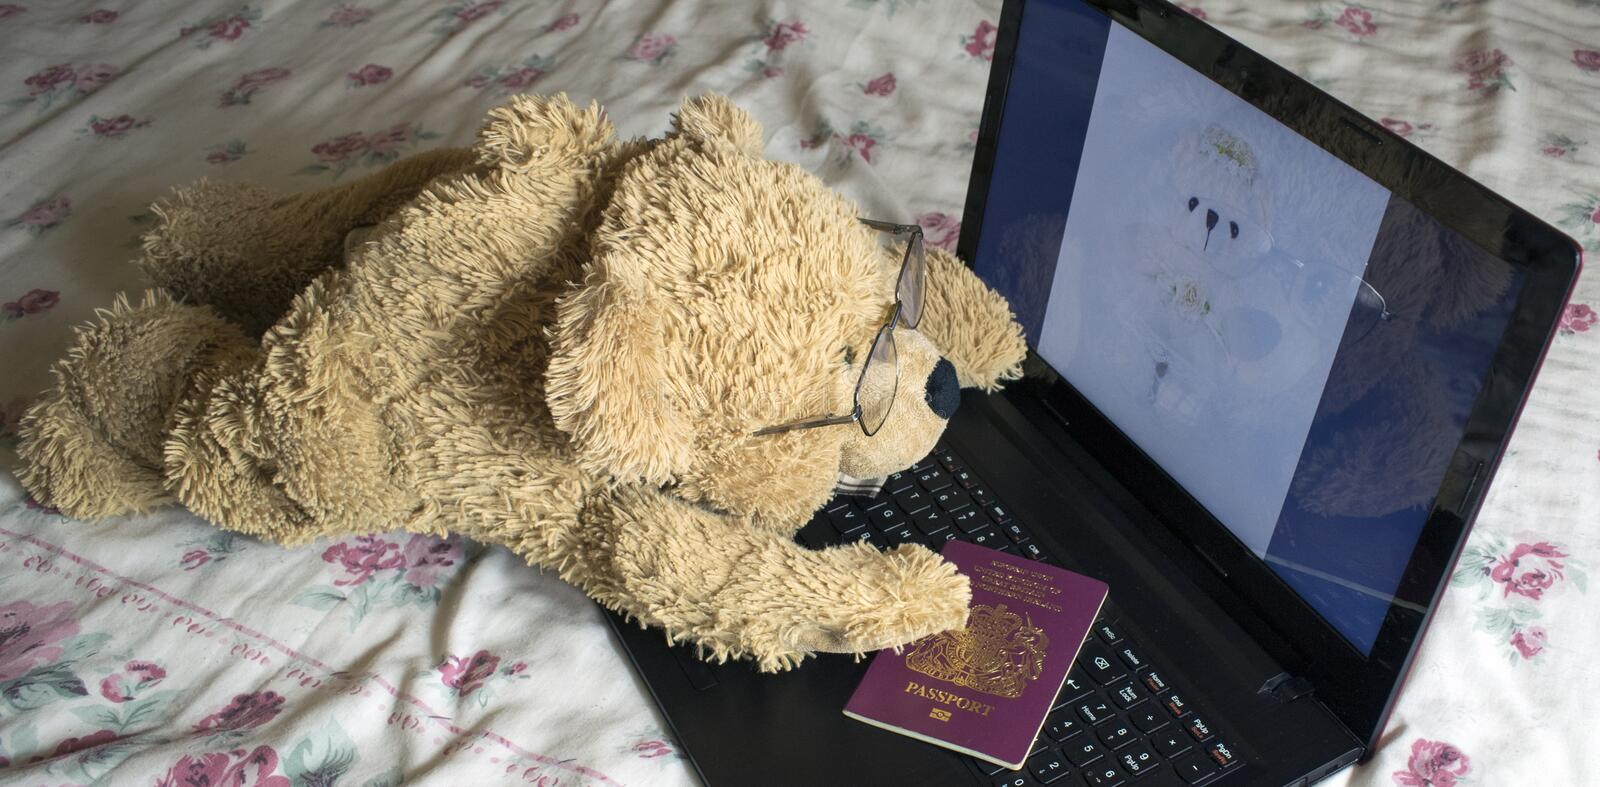 Lonely Bear Looking For Love On The Internet. Long Distance Relationship royalty free stock photo